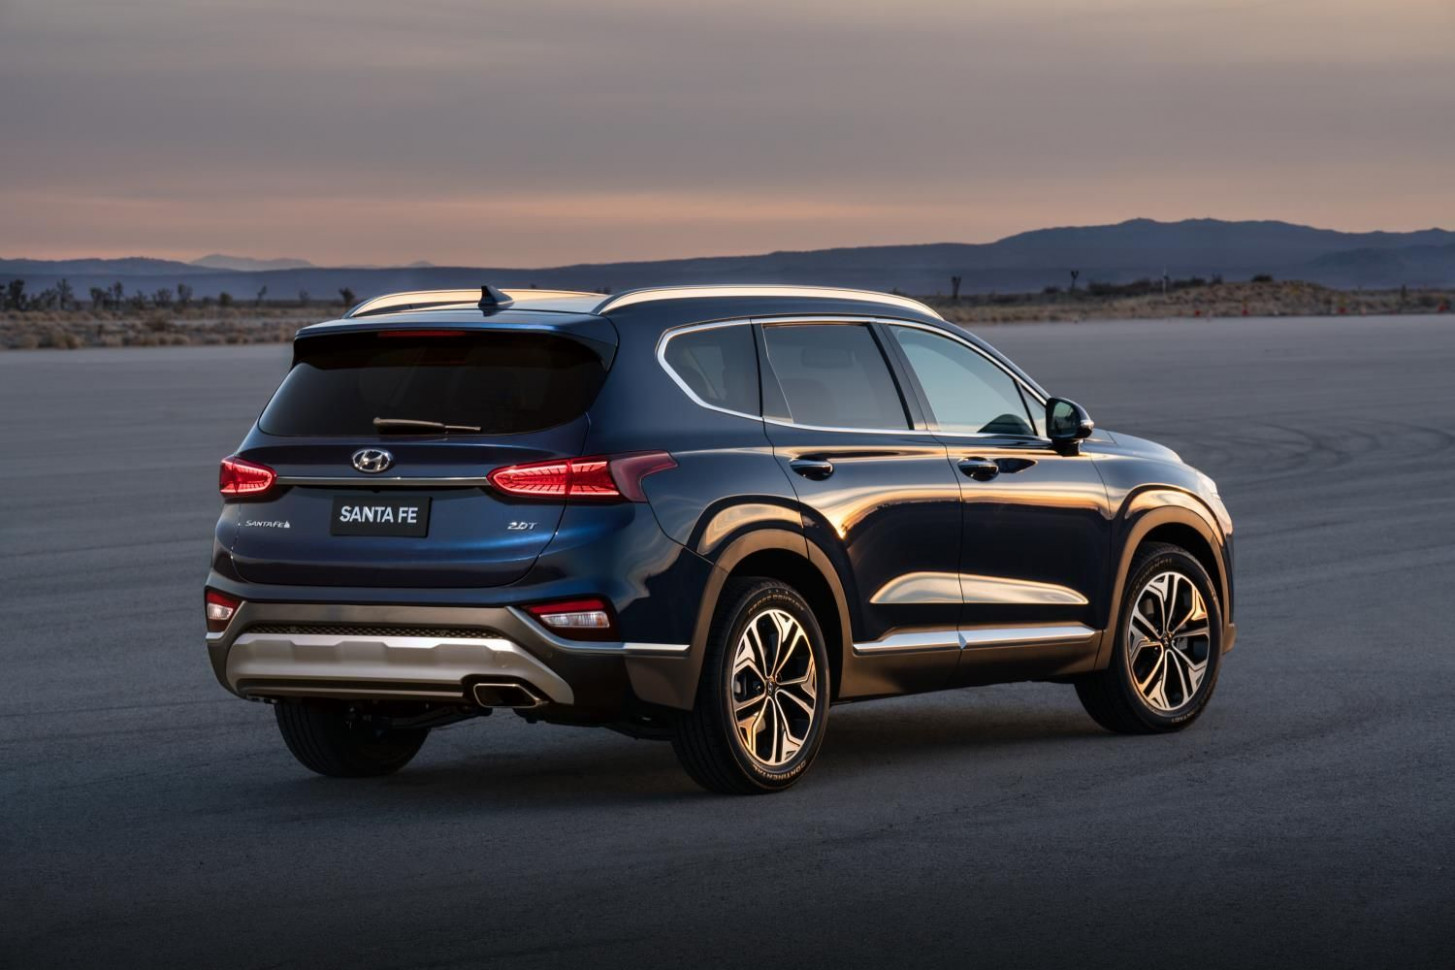 New Hyundai Santa Fe 11 Redesign, Price and Review | Best suv ...